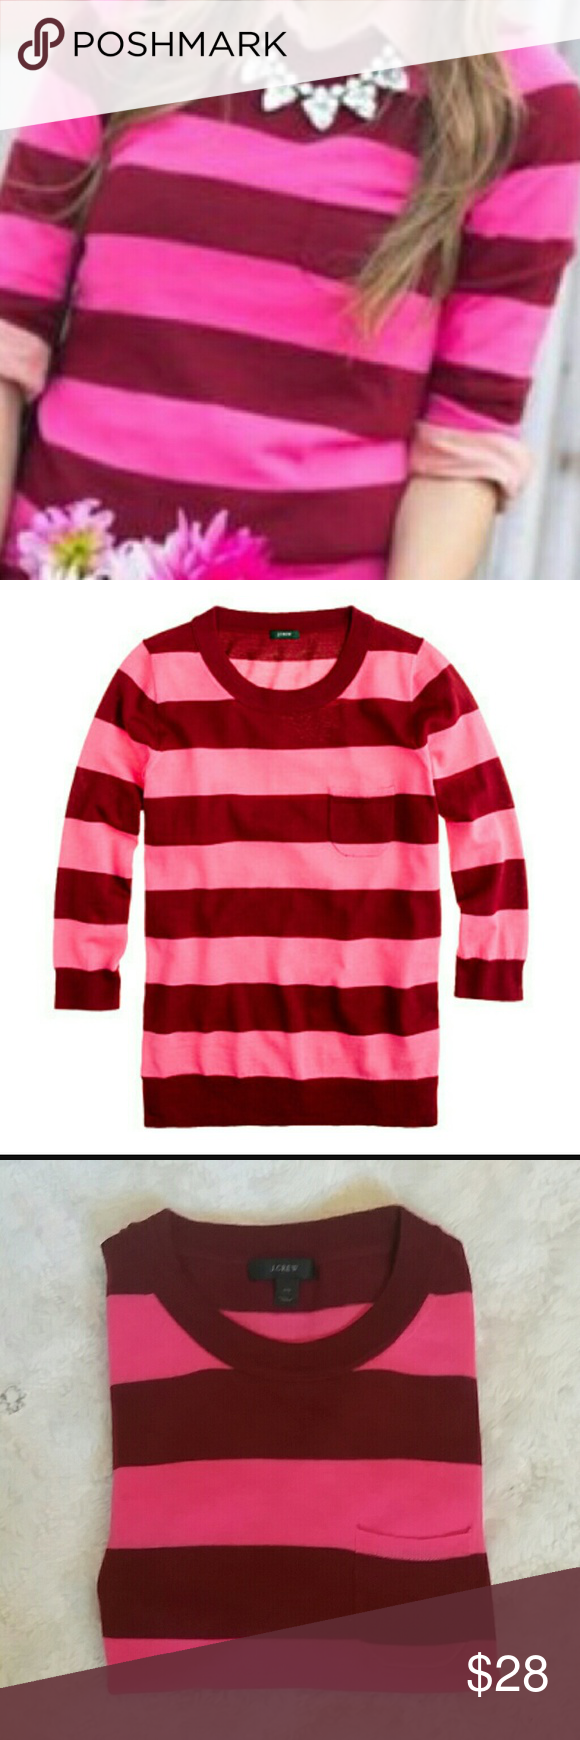 J.Crew Merino tippi sweater | D, Pink and Stripes